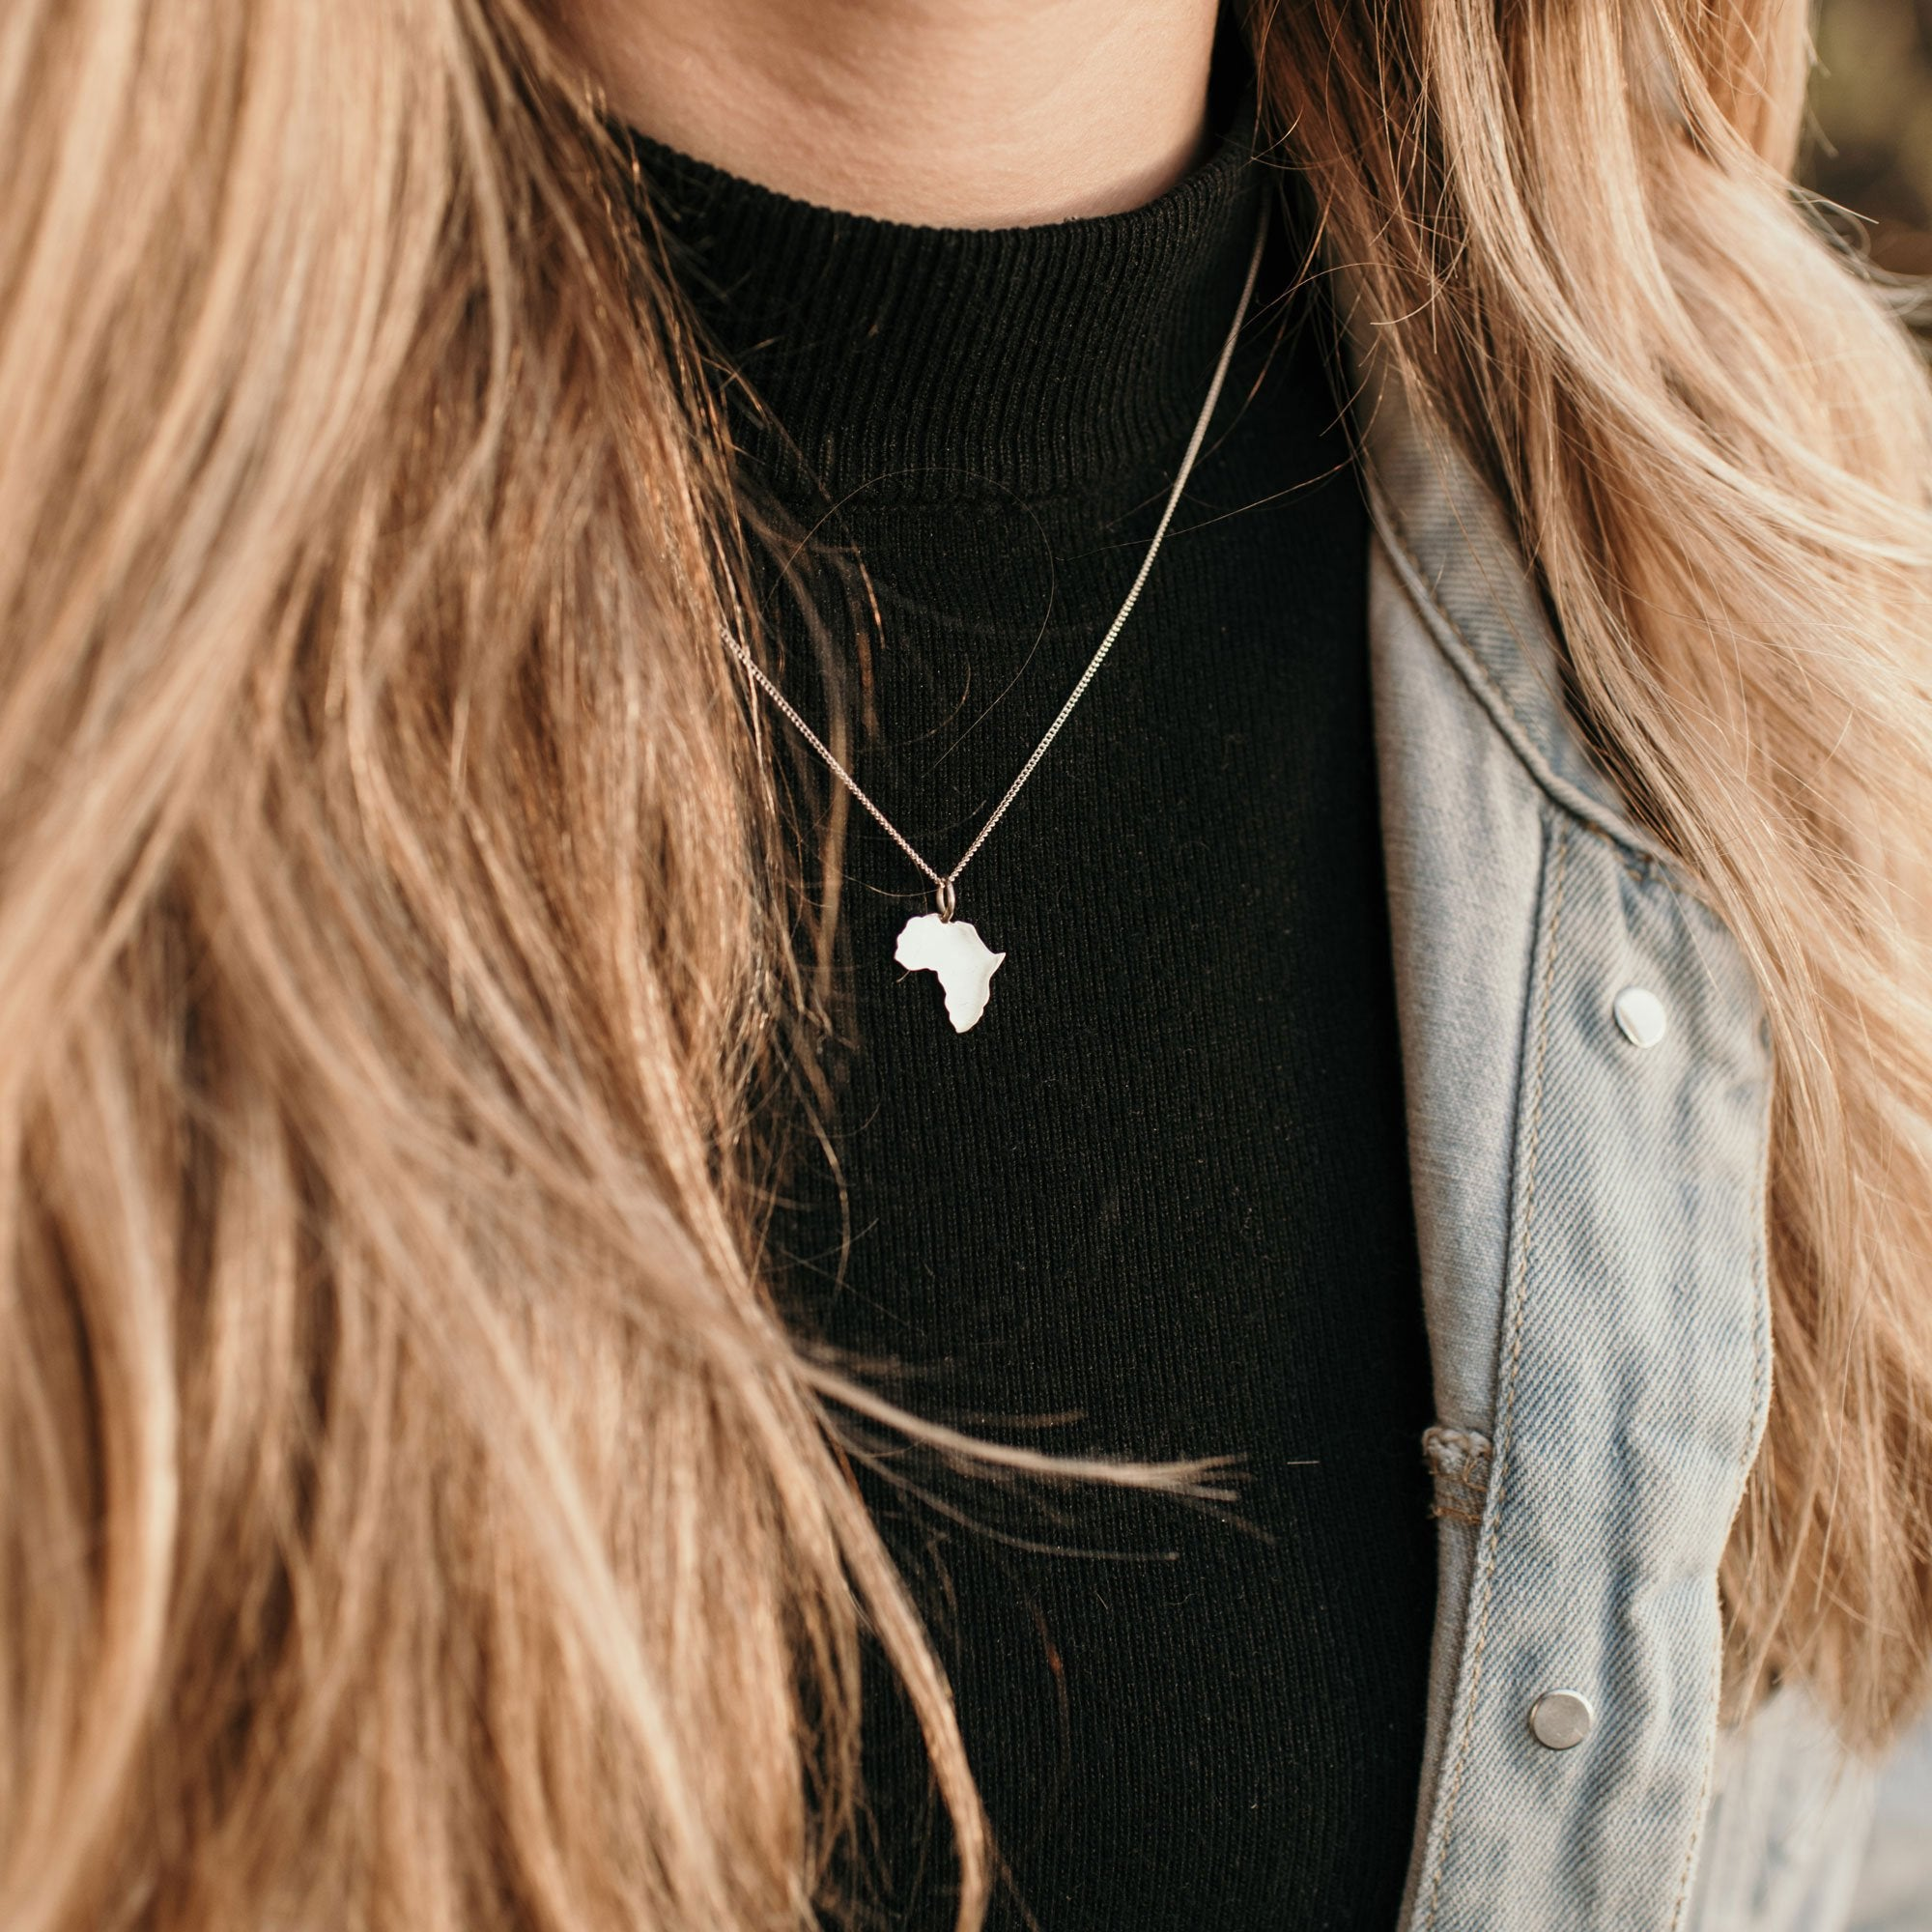 Silver Africa Pendant Necklace - Stokedthebrand. Lifestyle products for outdoor adventures. Made in South Africa